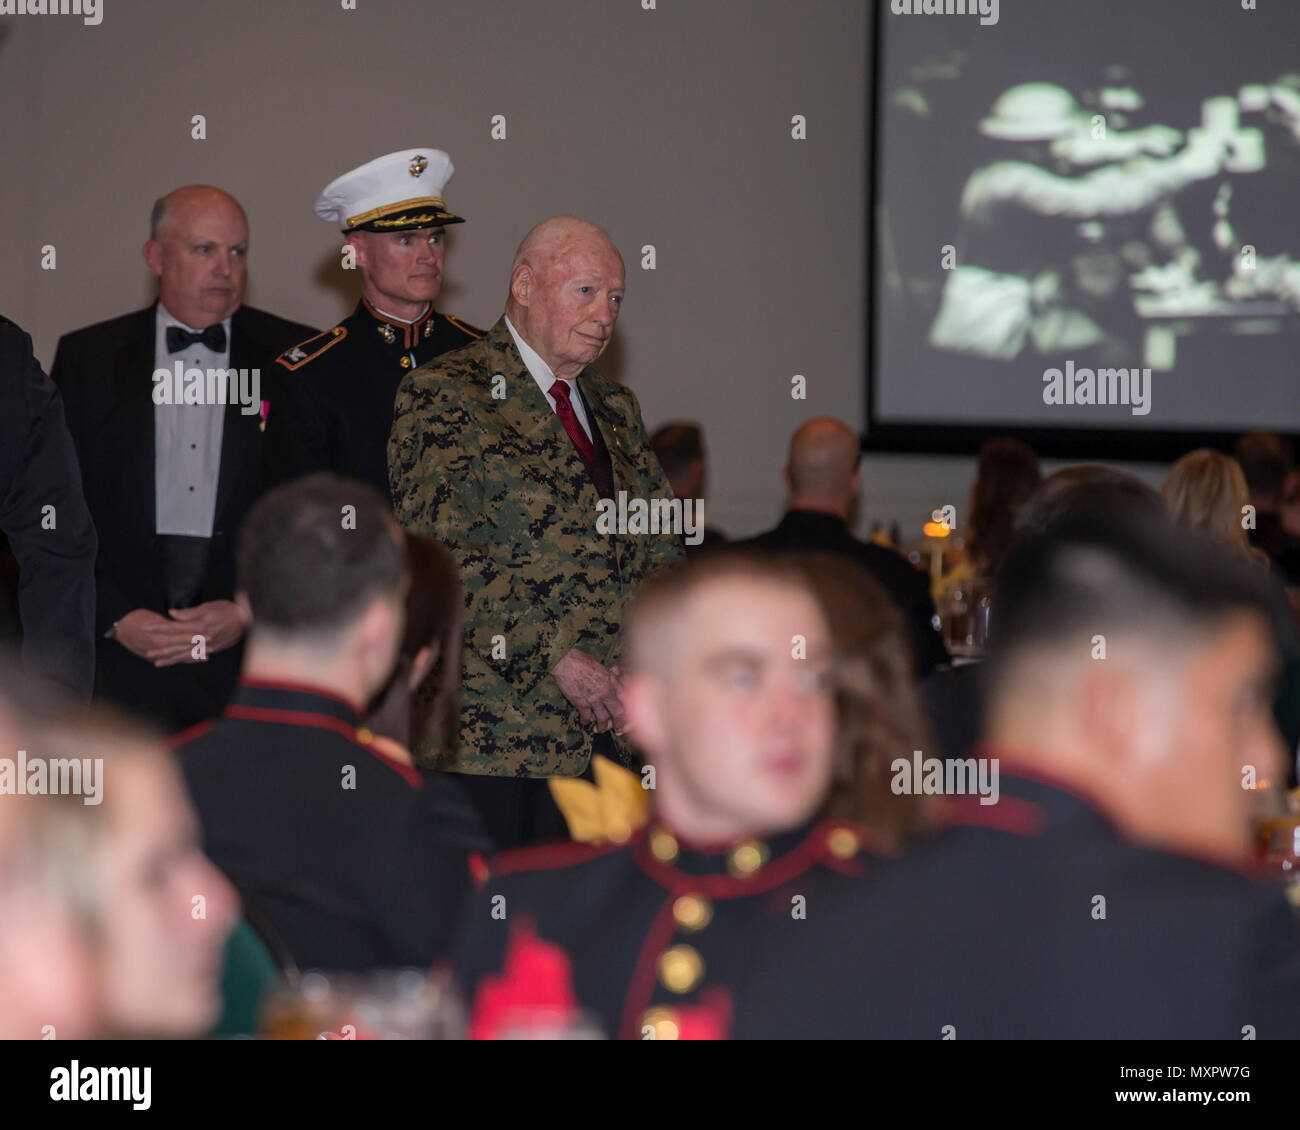 U.S. Marine Corps Gen. Alfred Gray (ret.), 29th Commandant of the Marine Corp, watches the birthday message of the 37th Commandant of the Marine Corp Gen. Robert Neller at Marine Corps Intelligence Activity's 241st Marine Corps birthday ball ceremony at the Fredericksburg Expo and Conference Center in Fredericksburg, Va., Nov. 10, 2016. The Continental Marines were established on this date in 1775, and the United States Marine Corps celebrates every year with a traditional birthday ball and cake-cutting ceremony. (U.S. Marine Corps photo by Cpl. Jacqueline A. Garcia) Stock Photo